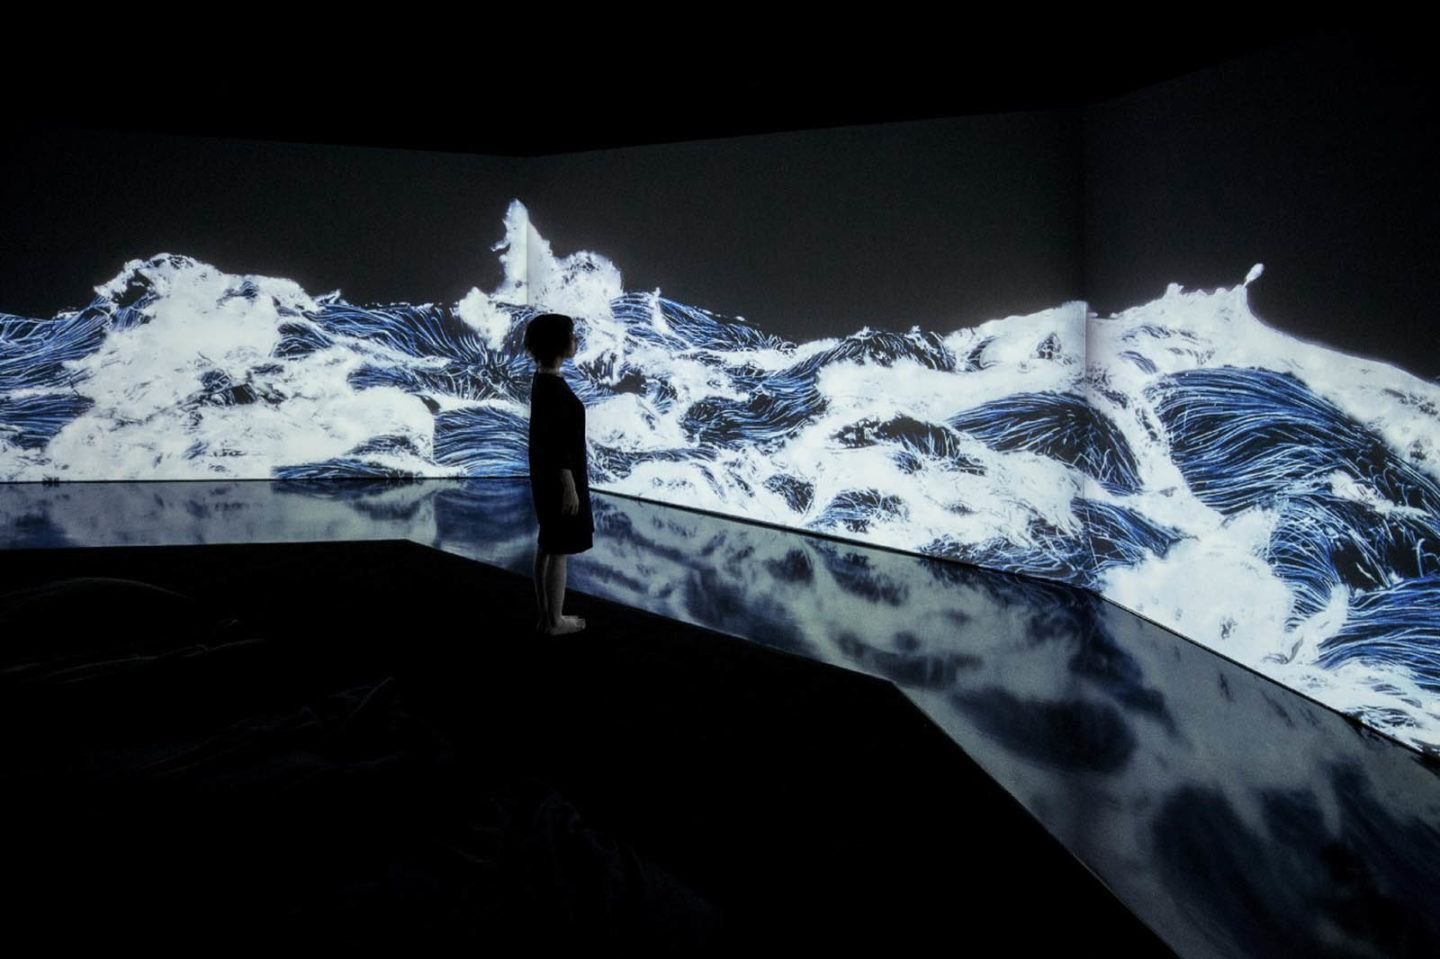 iGNANT-Art-teamLab-Borderless-Digital-Museum-003